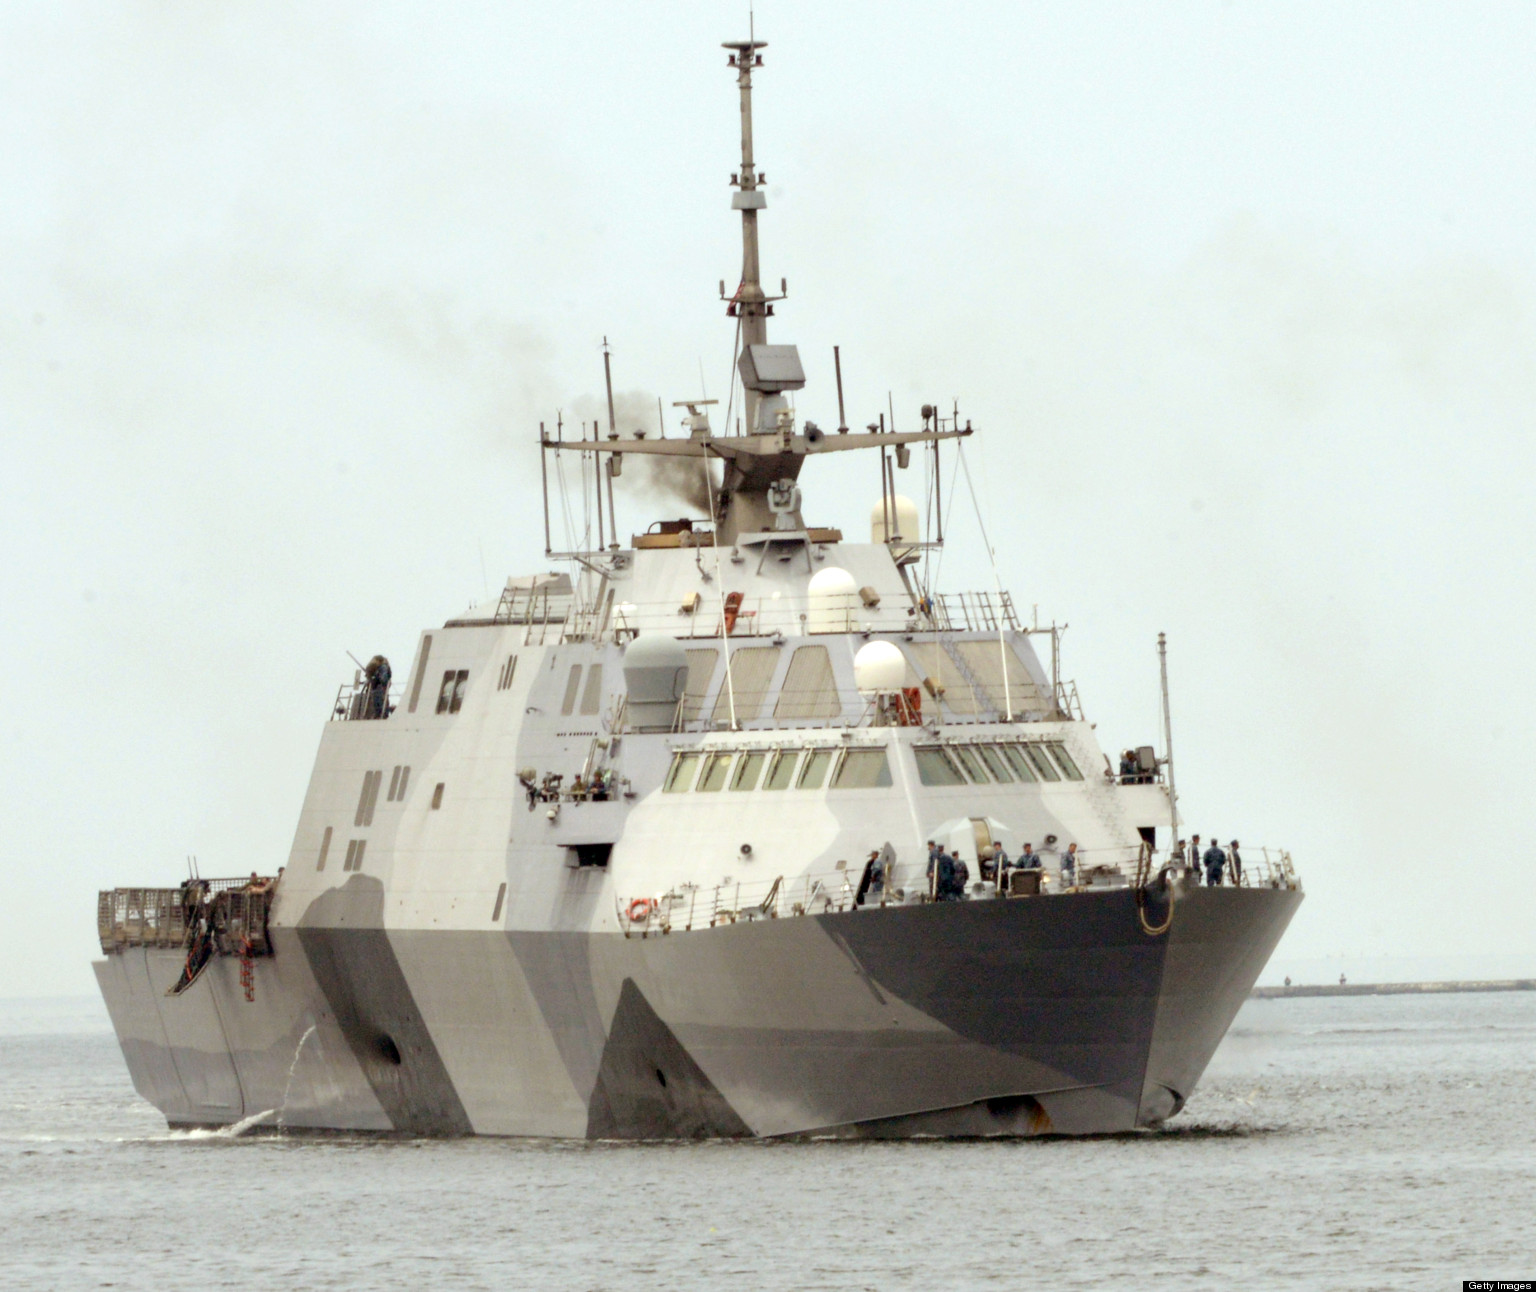 USS Freedom Navys Newest Warship Has Cyber Vulnerabilities Photo 1536x1292